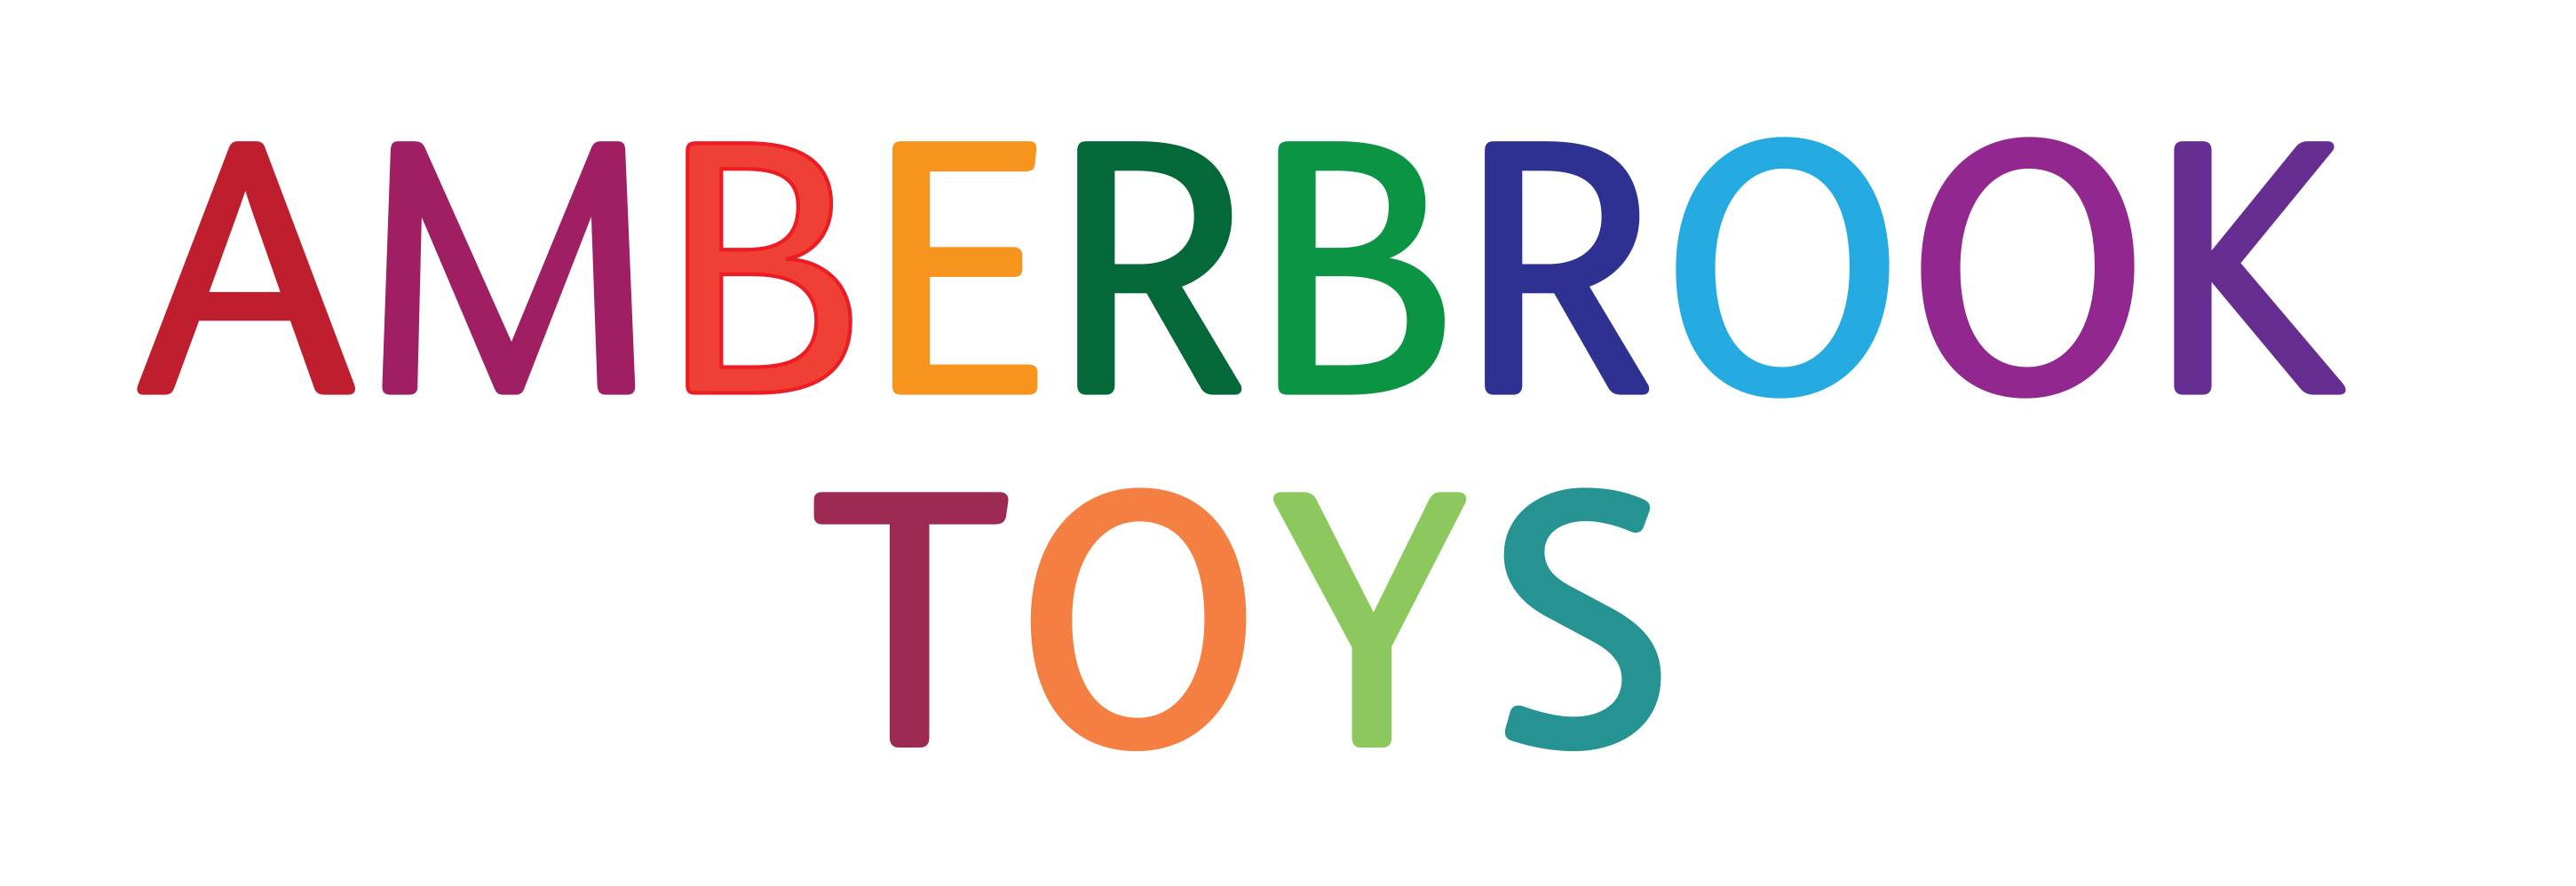 Amberbrook Toys official distributor in Malaysia for Djeco